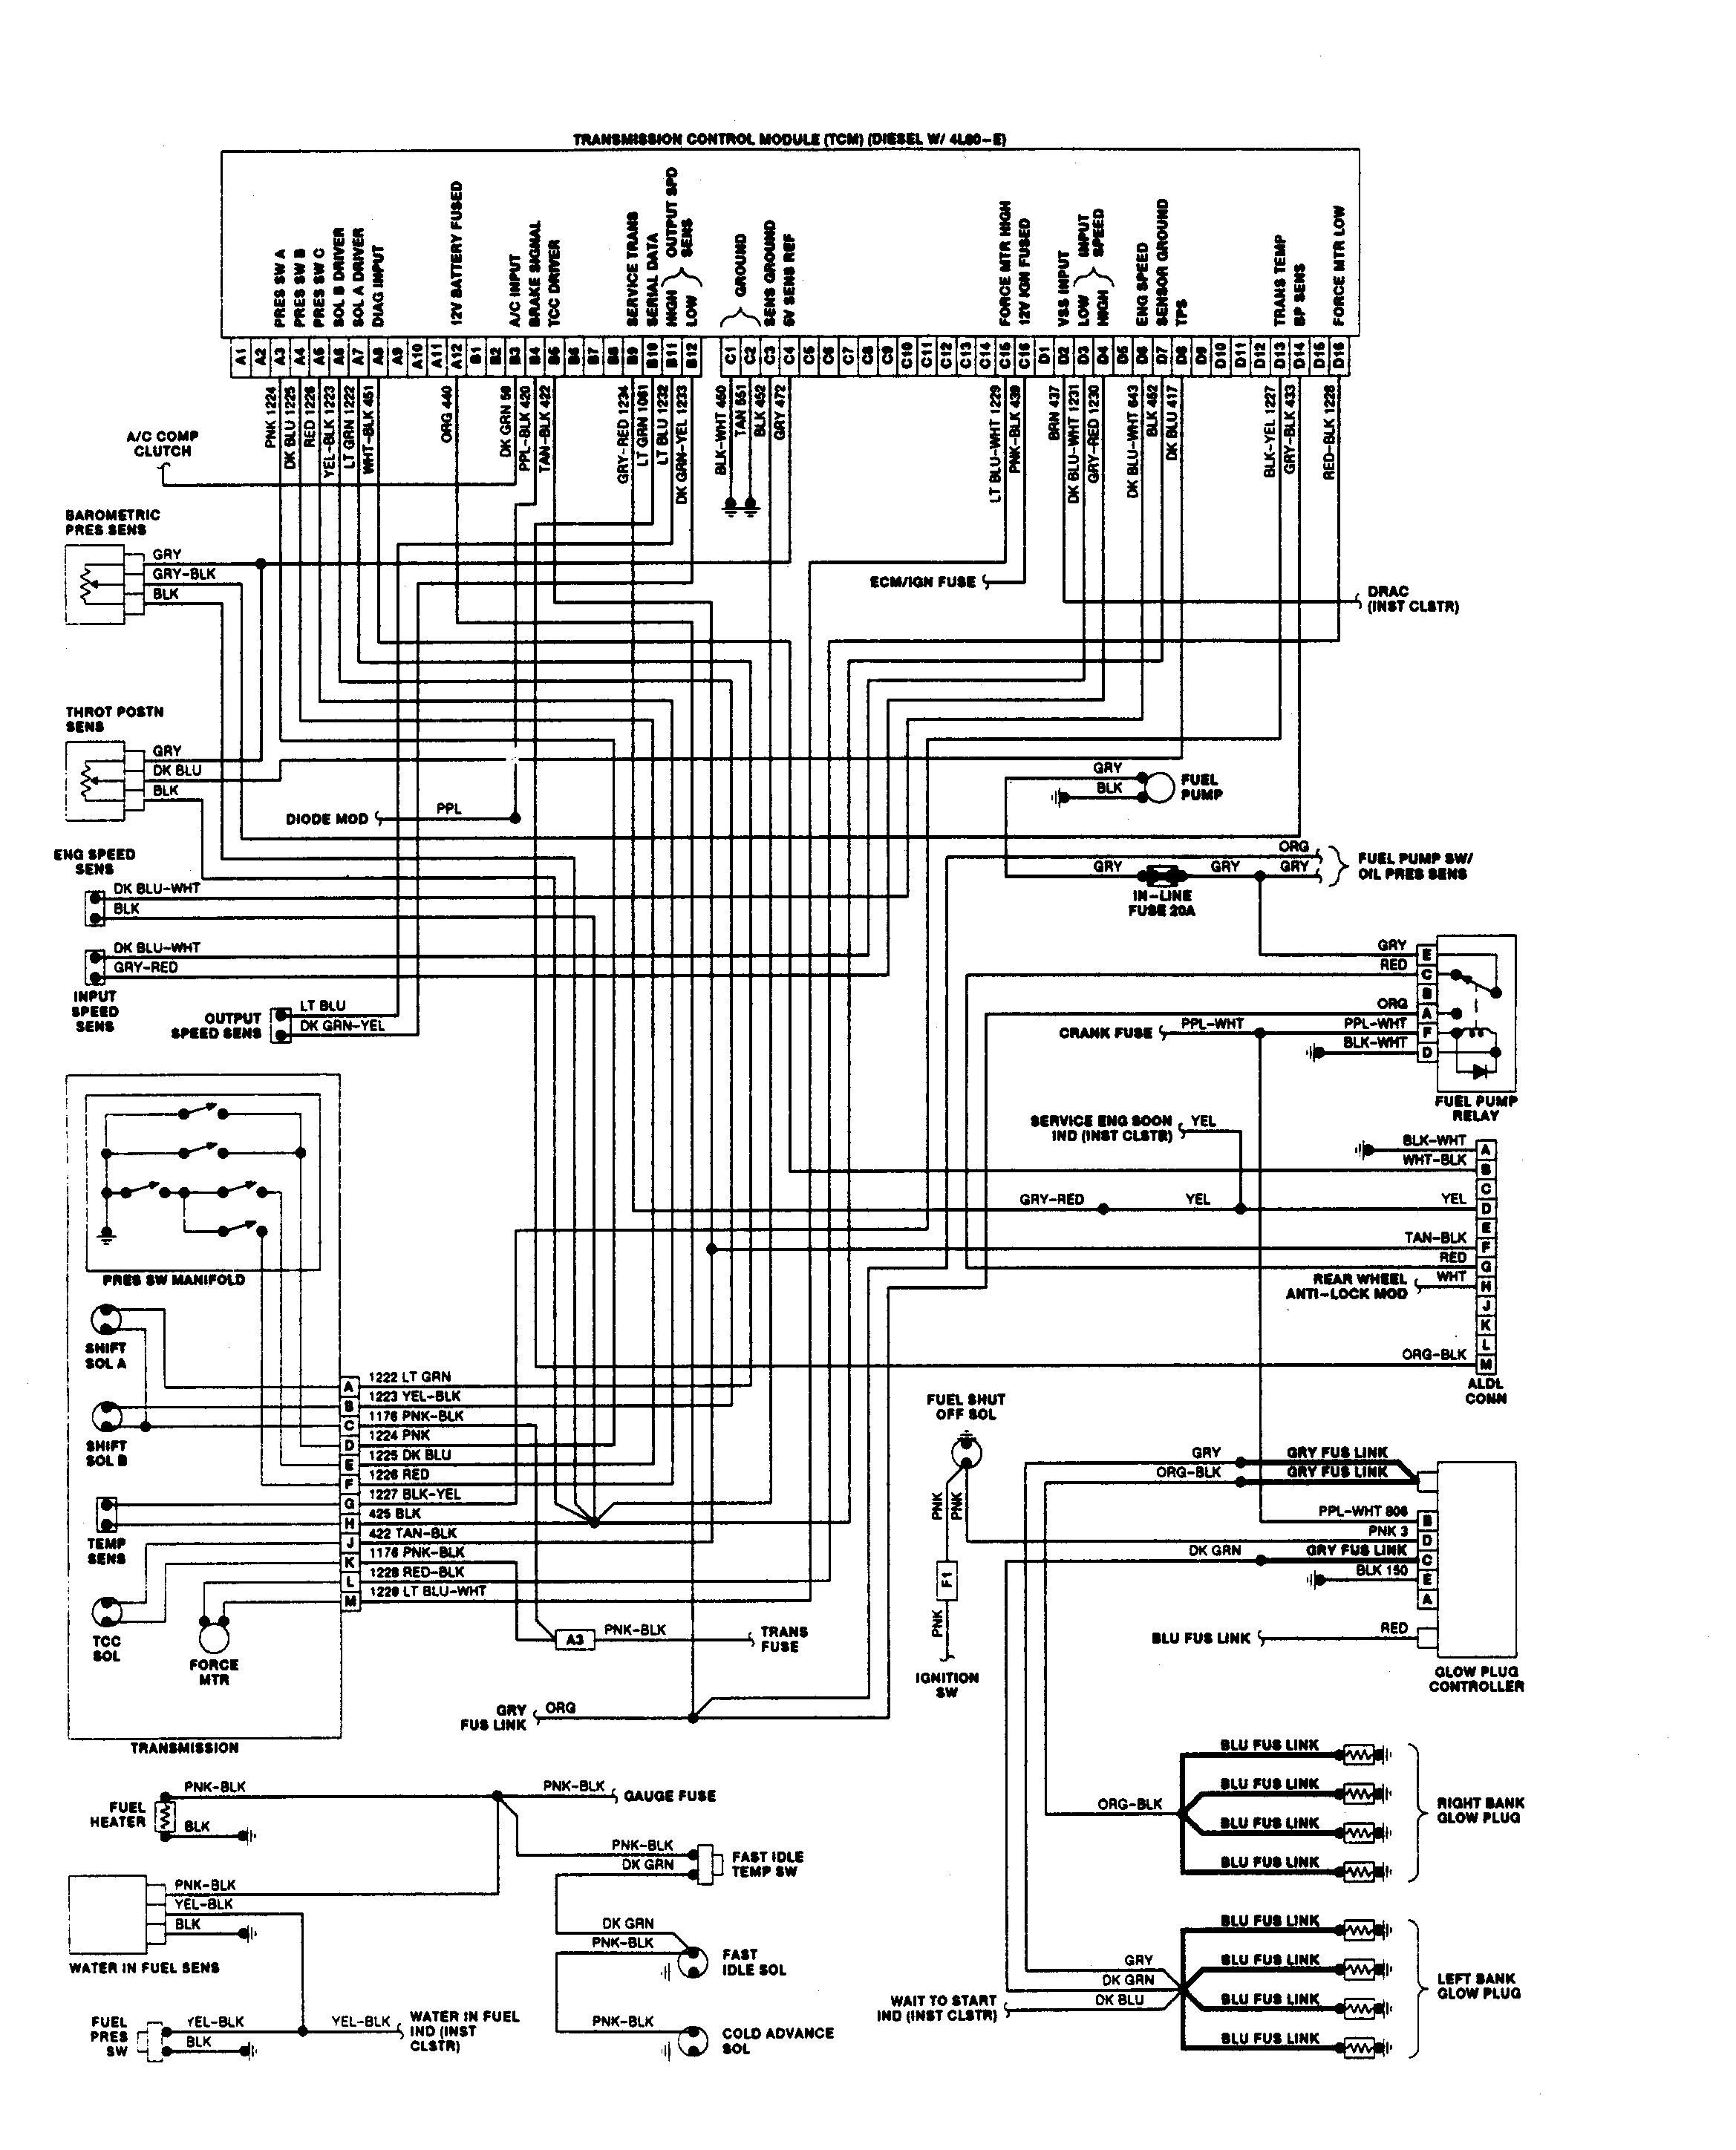 1991 chevy p30 wiring diagrams wiring diagrams schematics 1999 chevy p30 wiring diagram 1991 chevy p30 [ 2338 x 2896 Pixel ]